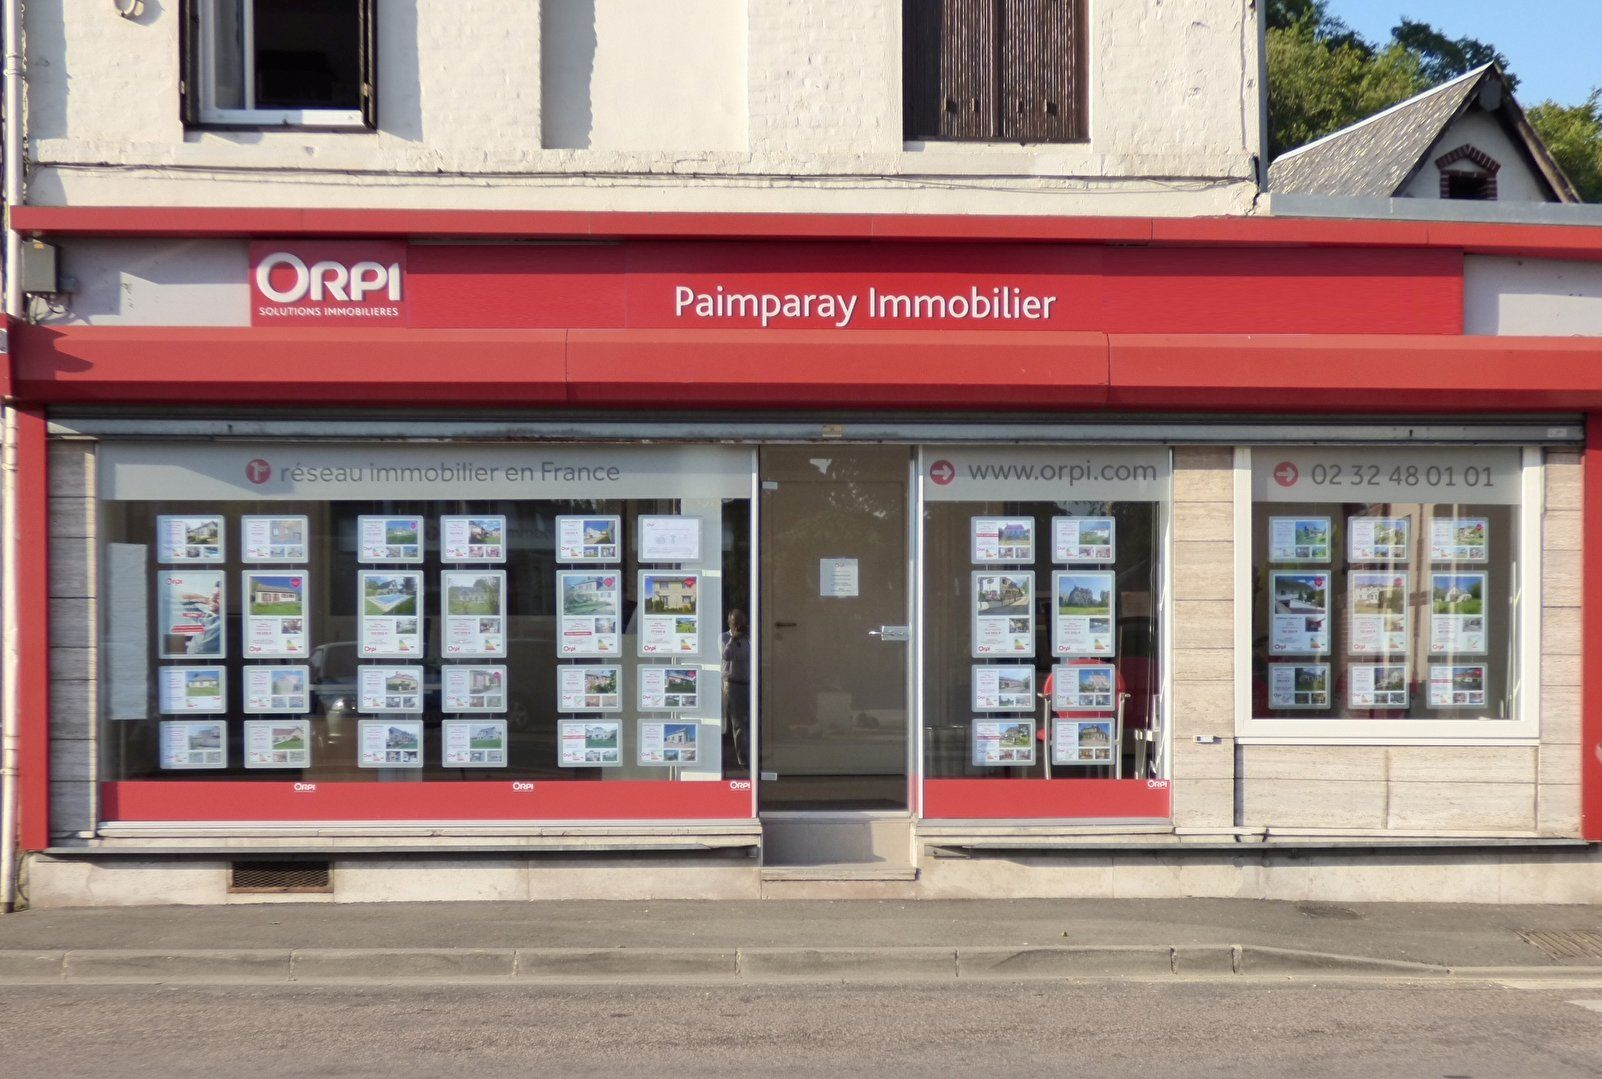 Paimparay Immobilier